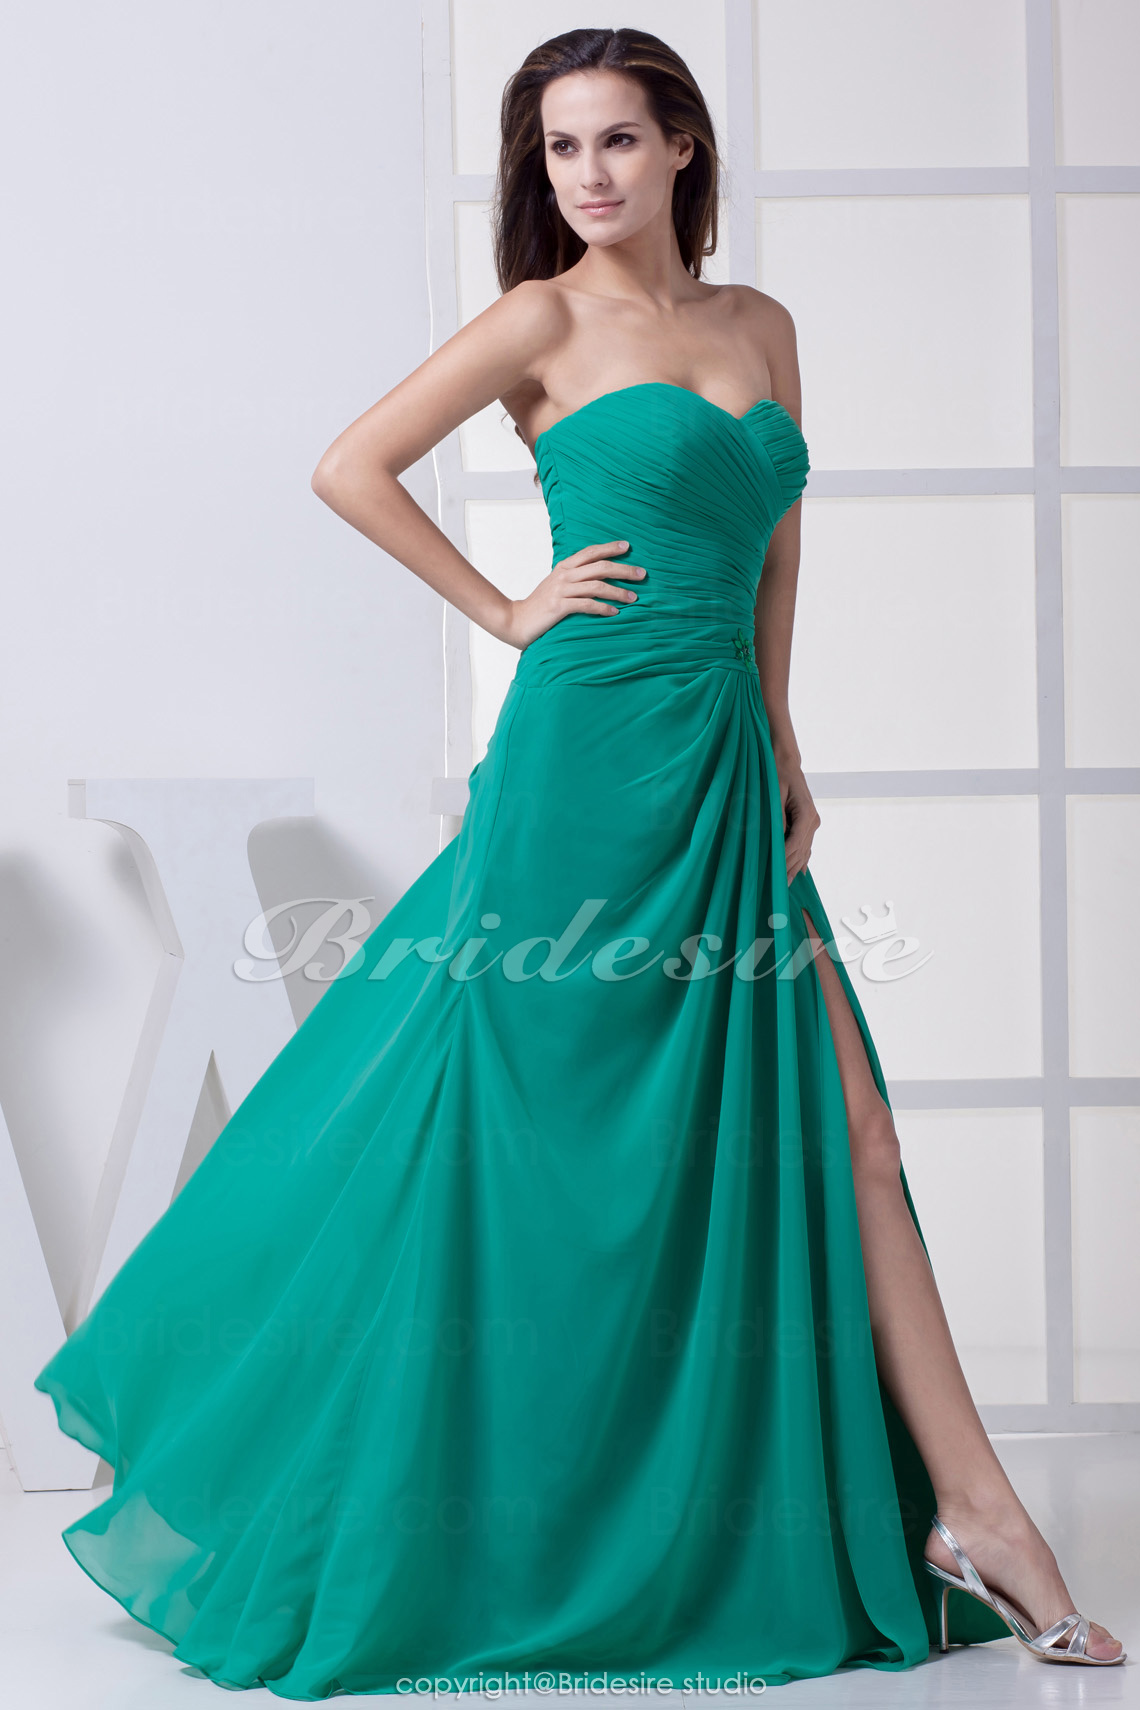 Sheath/Column Sweetheart Floor-length Sleeveless Chiffon Bridesmaid Dress